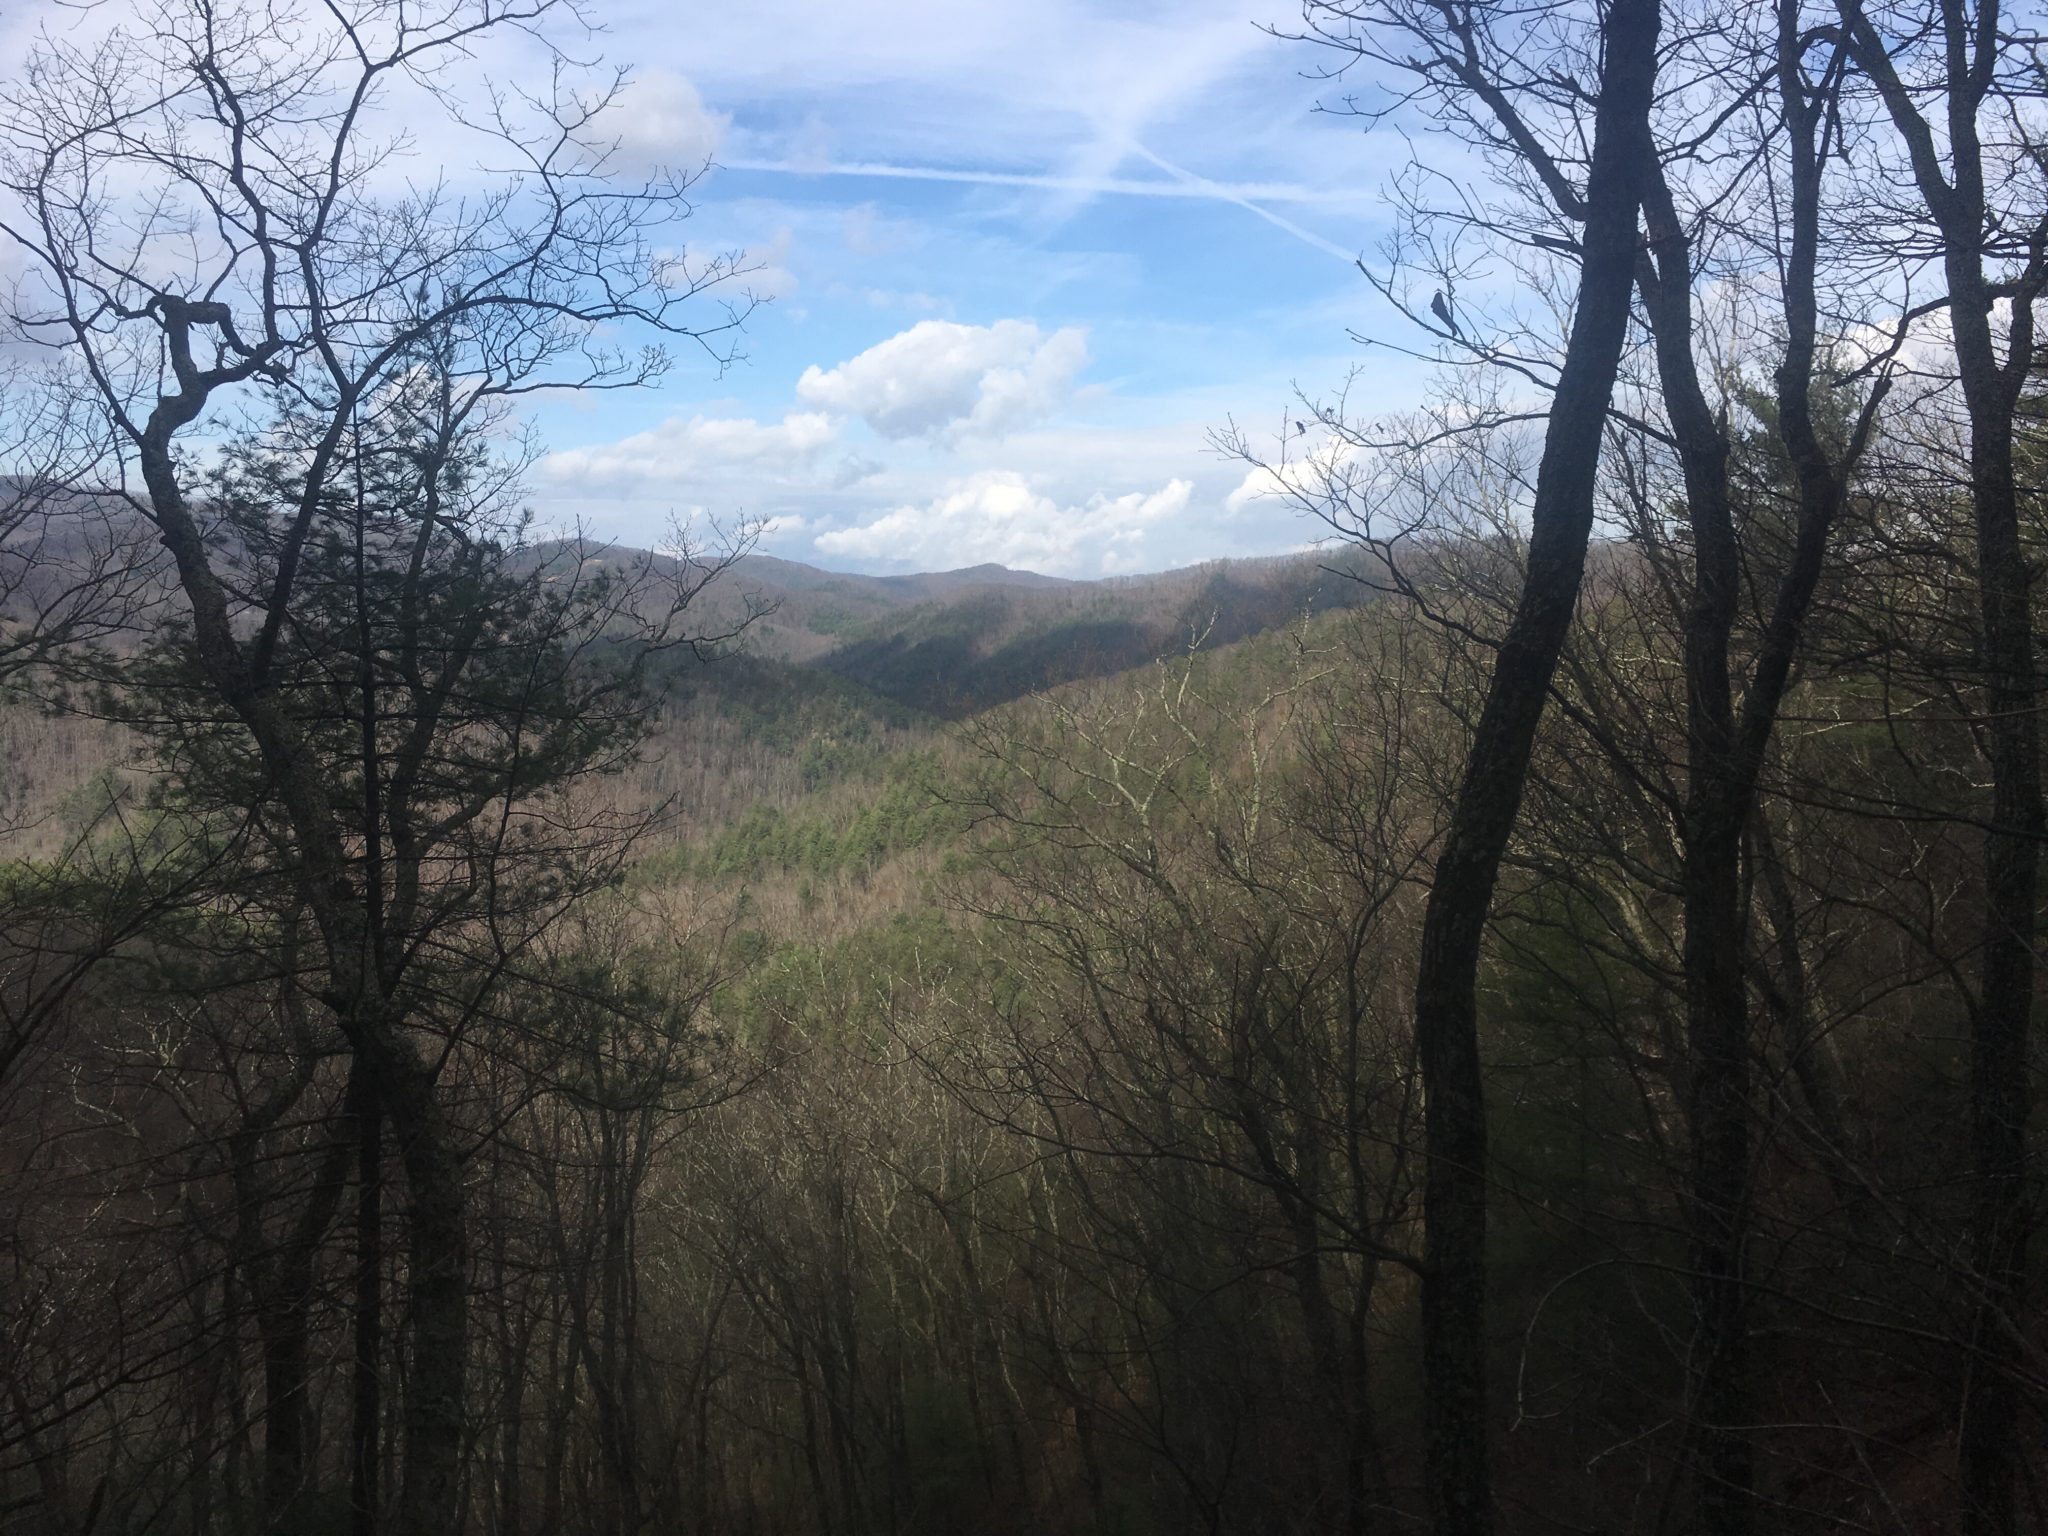 Great day for hiking